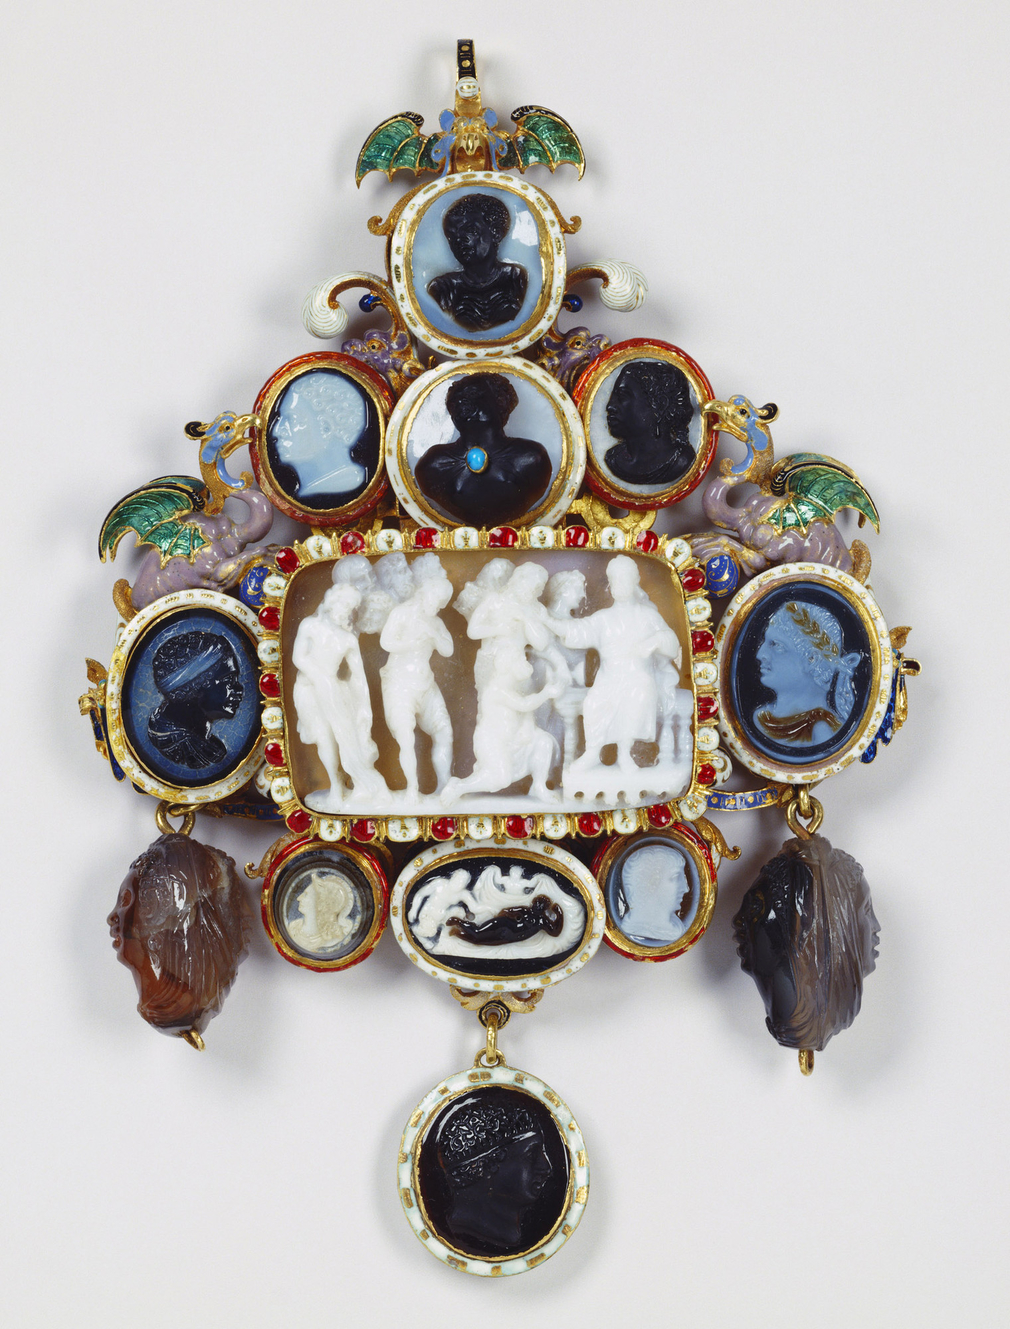 Gold openwork pendant with opaque white and middle-blue enamel foliate scrolls and two dragons on cornucopiae in opaque mauve, translucent green and opaque pale-blue émail en ronde bosse on either side of a central arched niche. The jewel is surmou